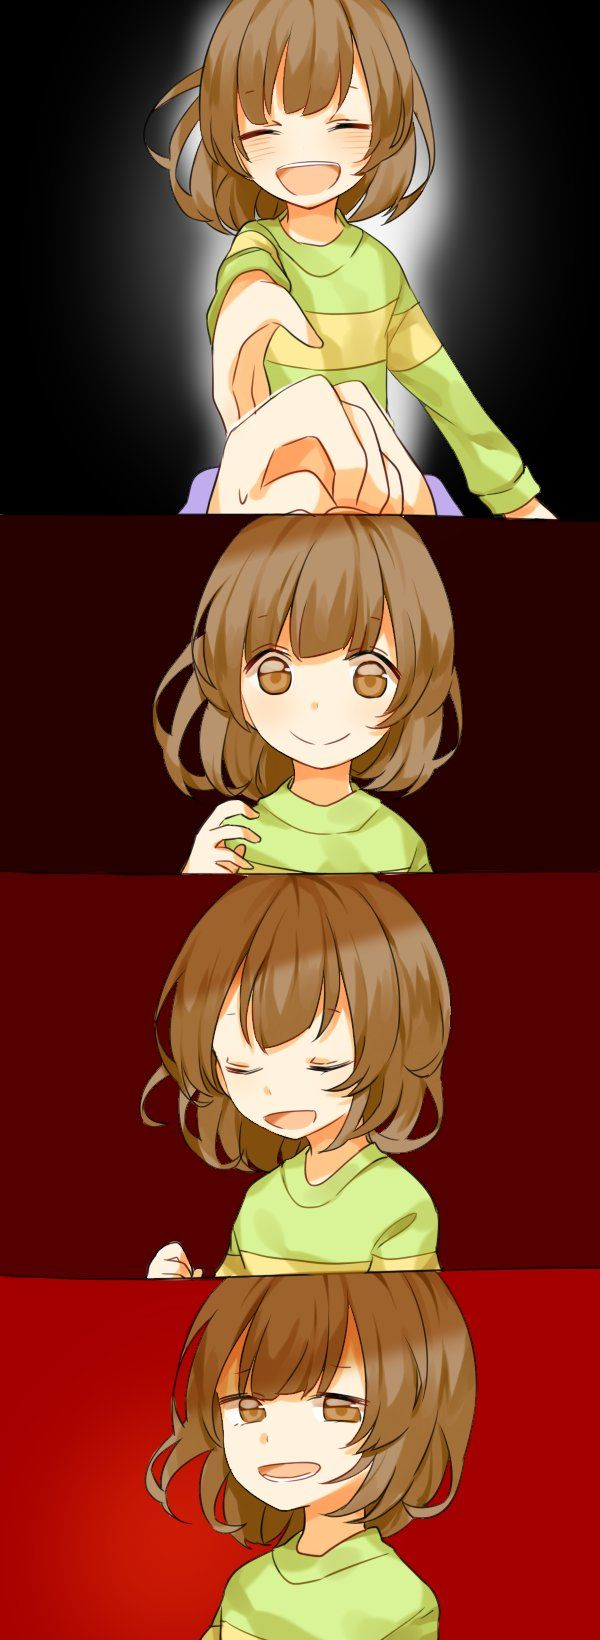 ^_^ androgynous black_background brown_eyes brown_hair chara_(undertale) closed_eyes comic commentary_request evil_smile frisk_(undertale) gameplay_mechanics highres misha_(hoongju) outstretched_hand pov pov_hands red_background smile spoilers undertale